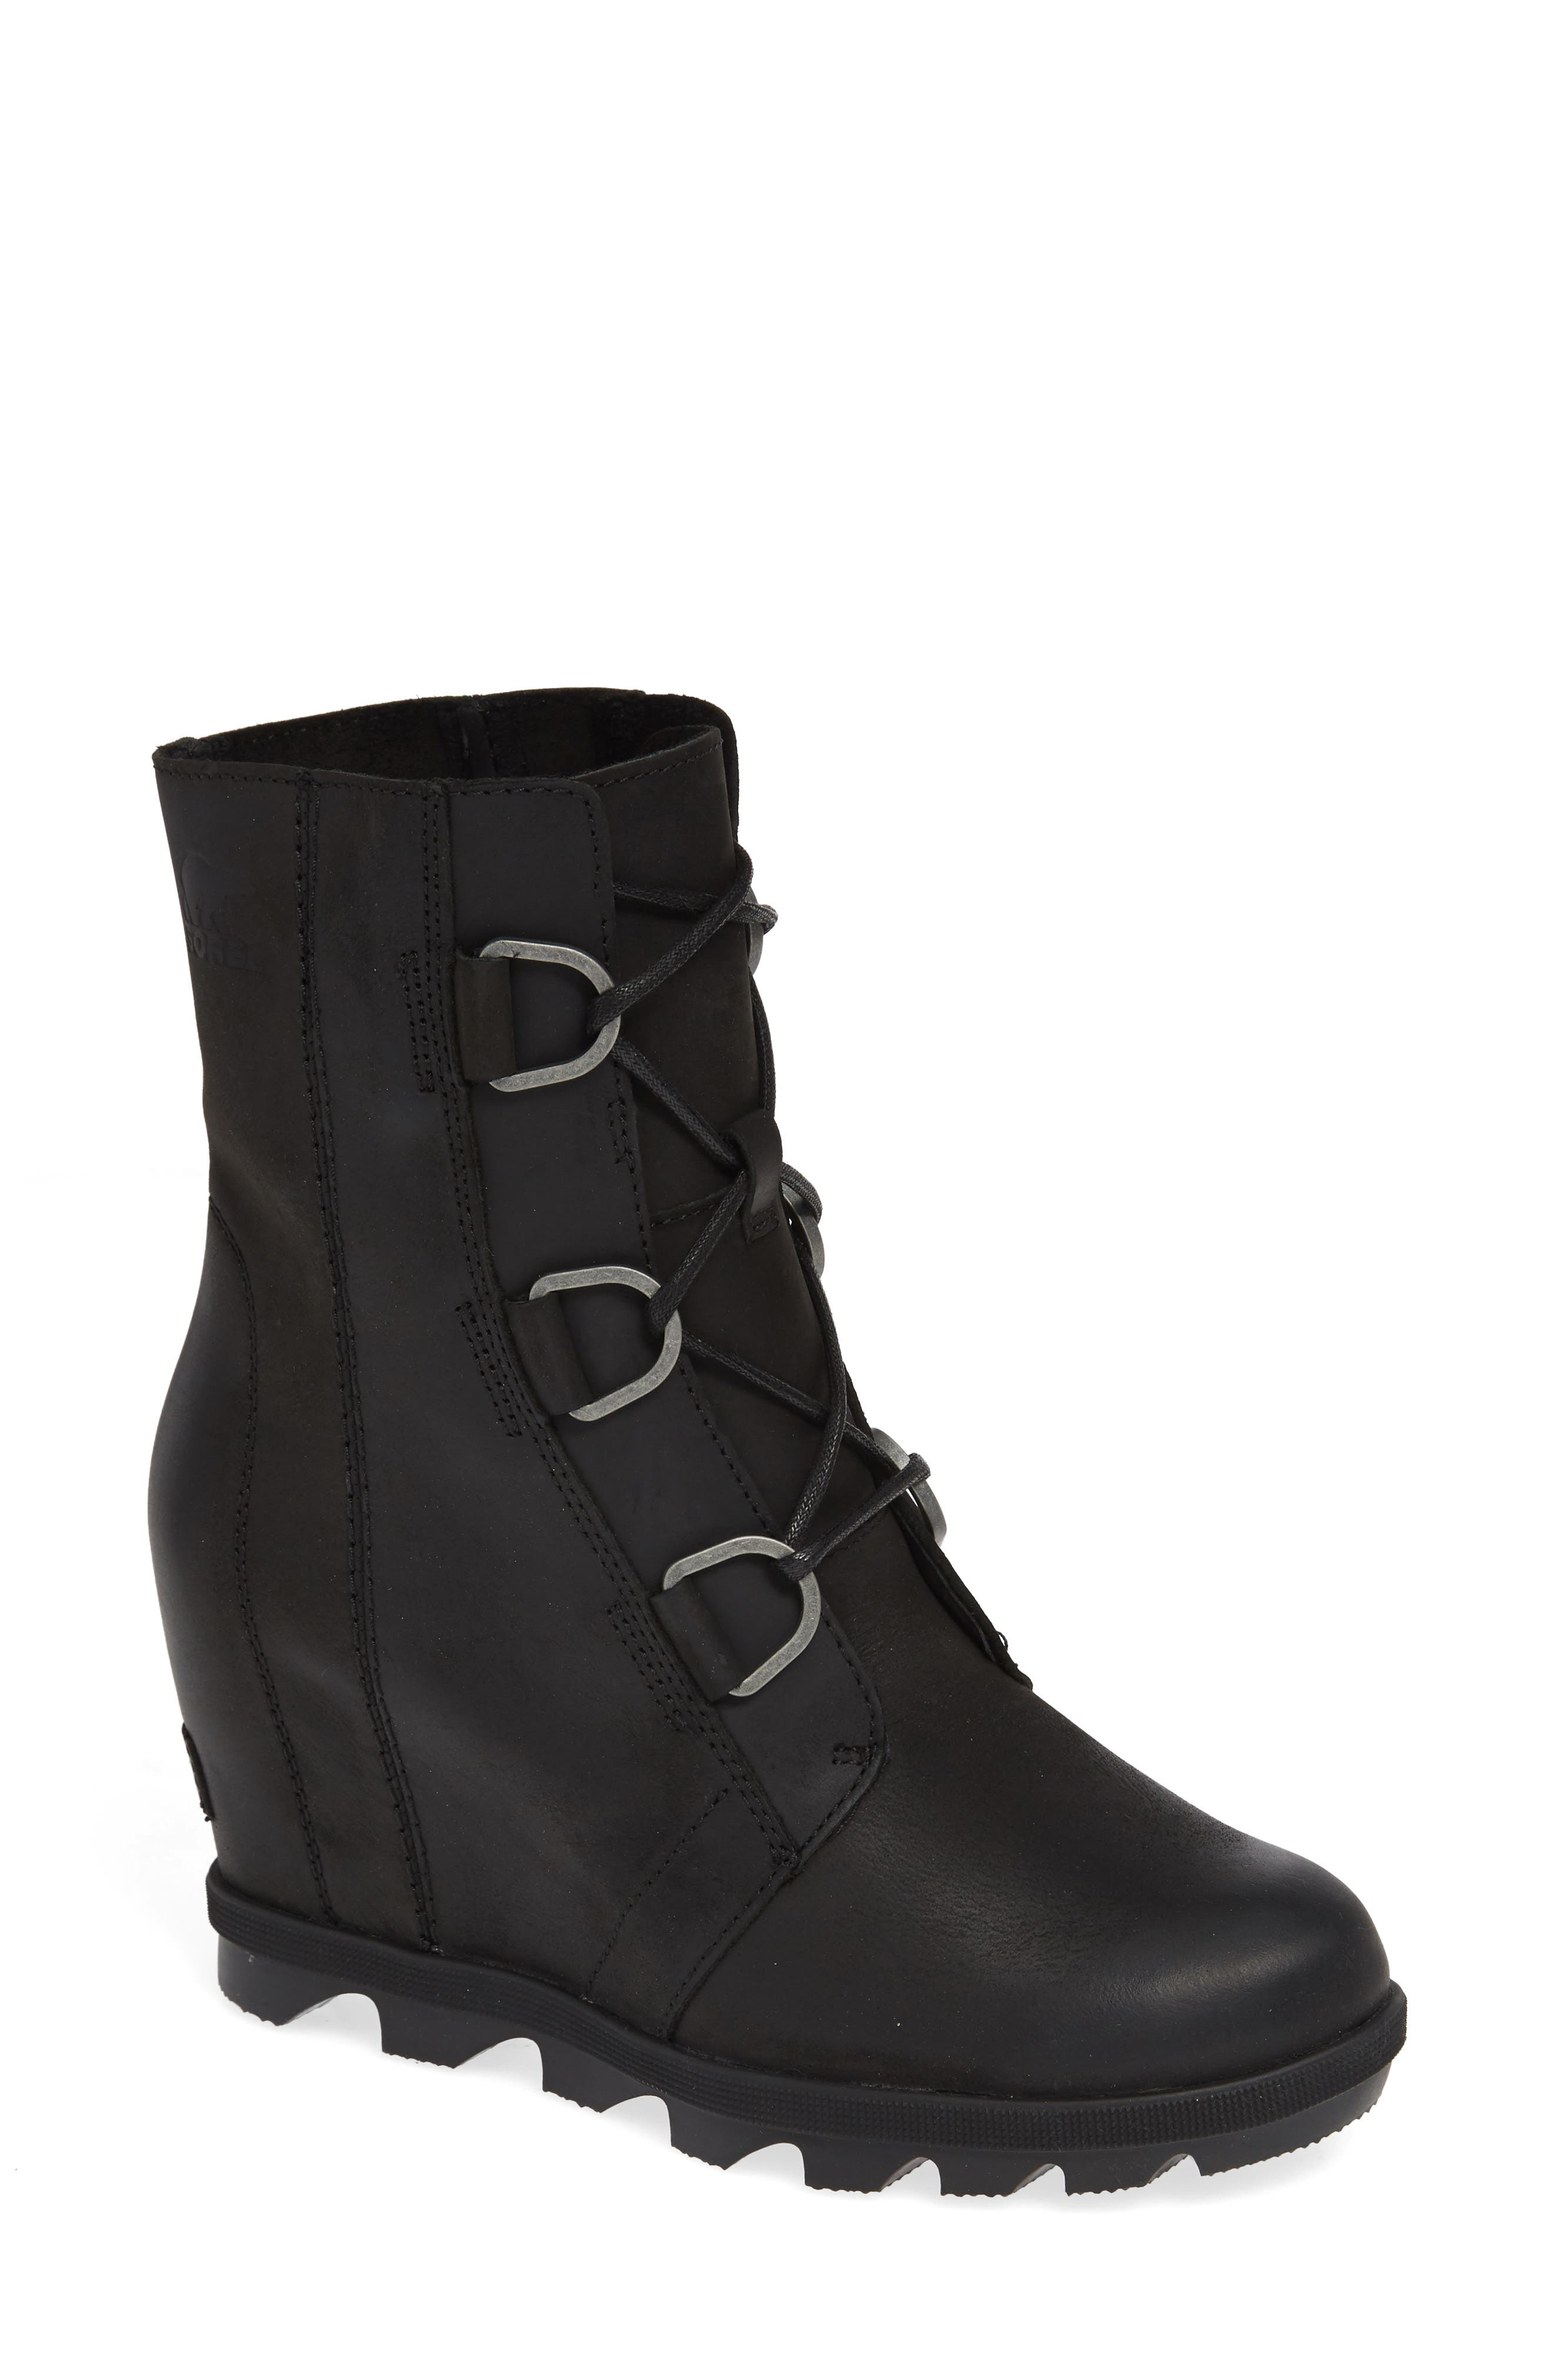 Sorel Joan Of Arctic Ii Waterproof Wedge Boot, Black